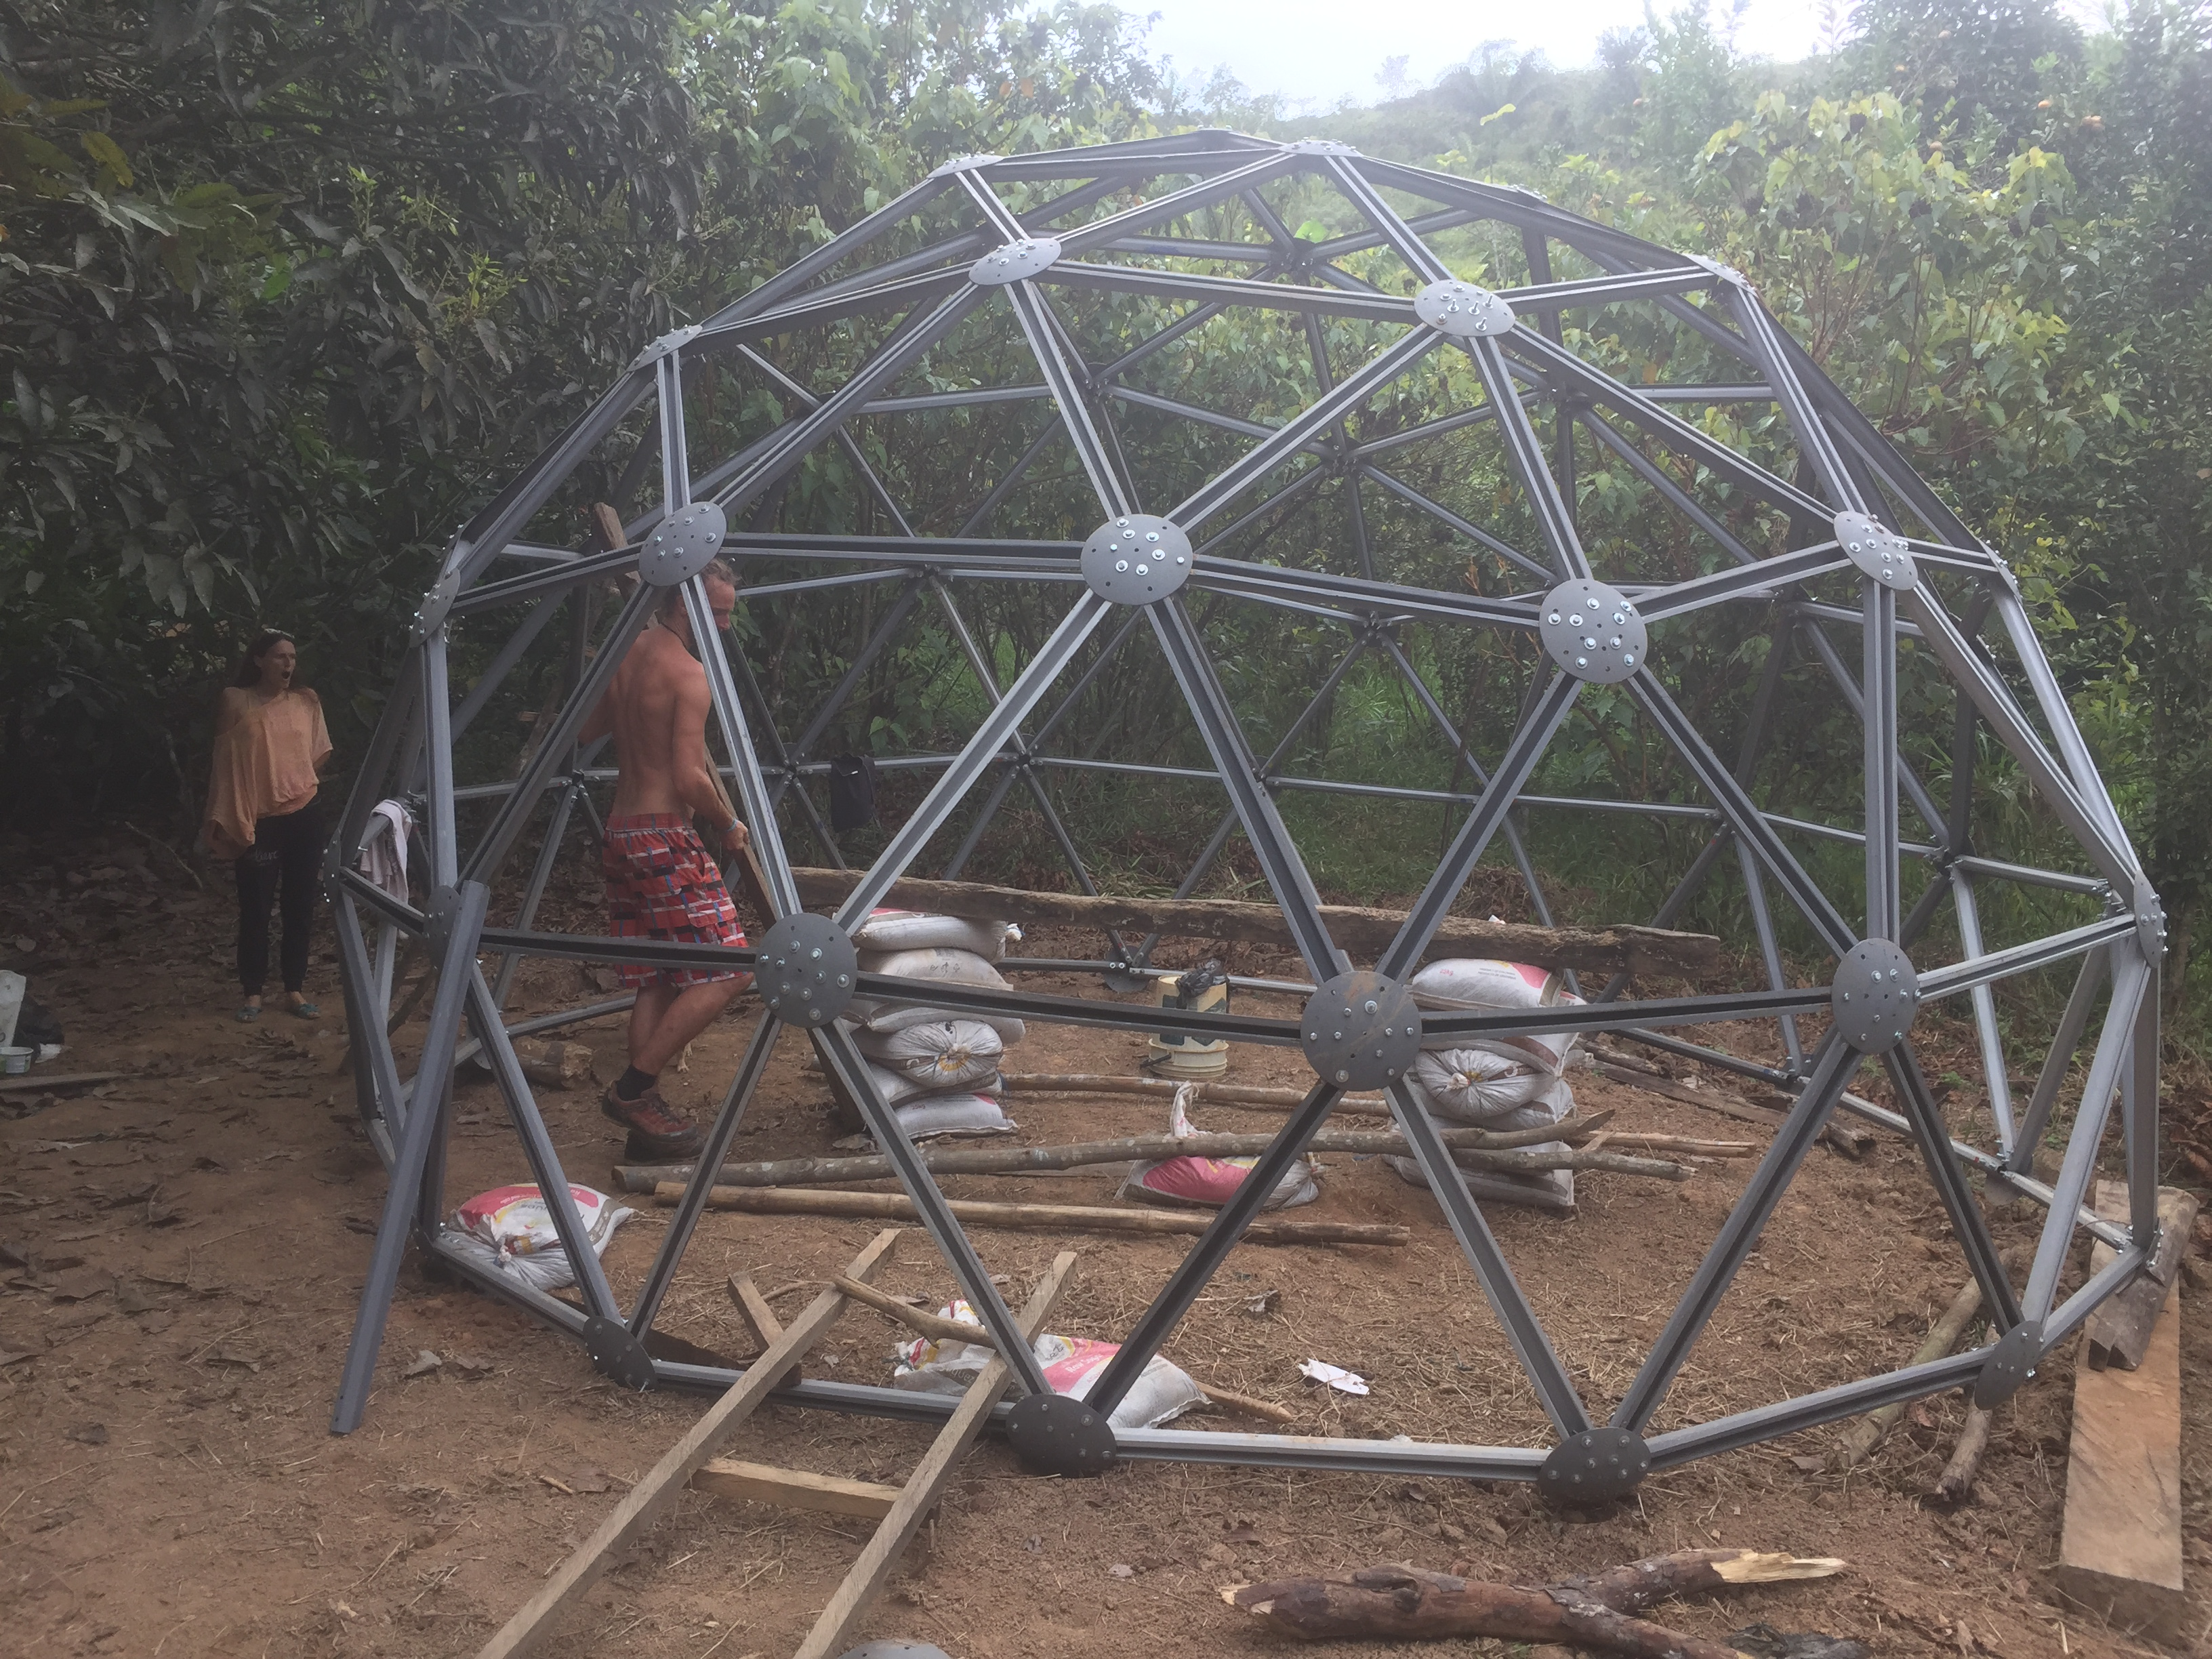 Roofing Material Options For A Geodesic Dome In The Wet